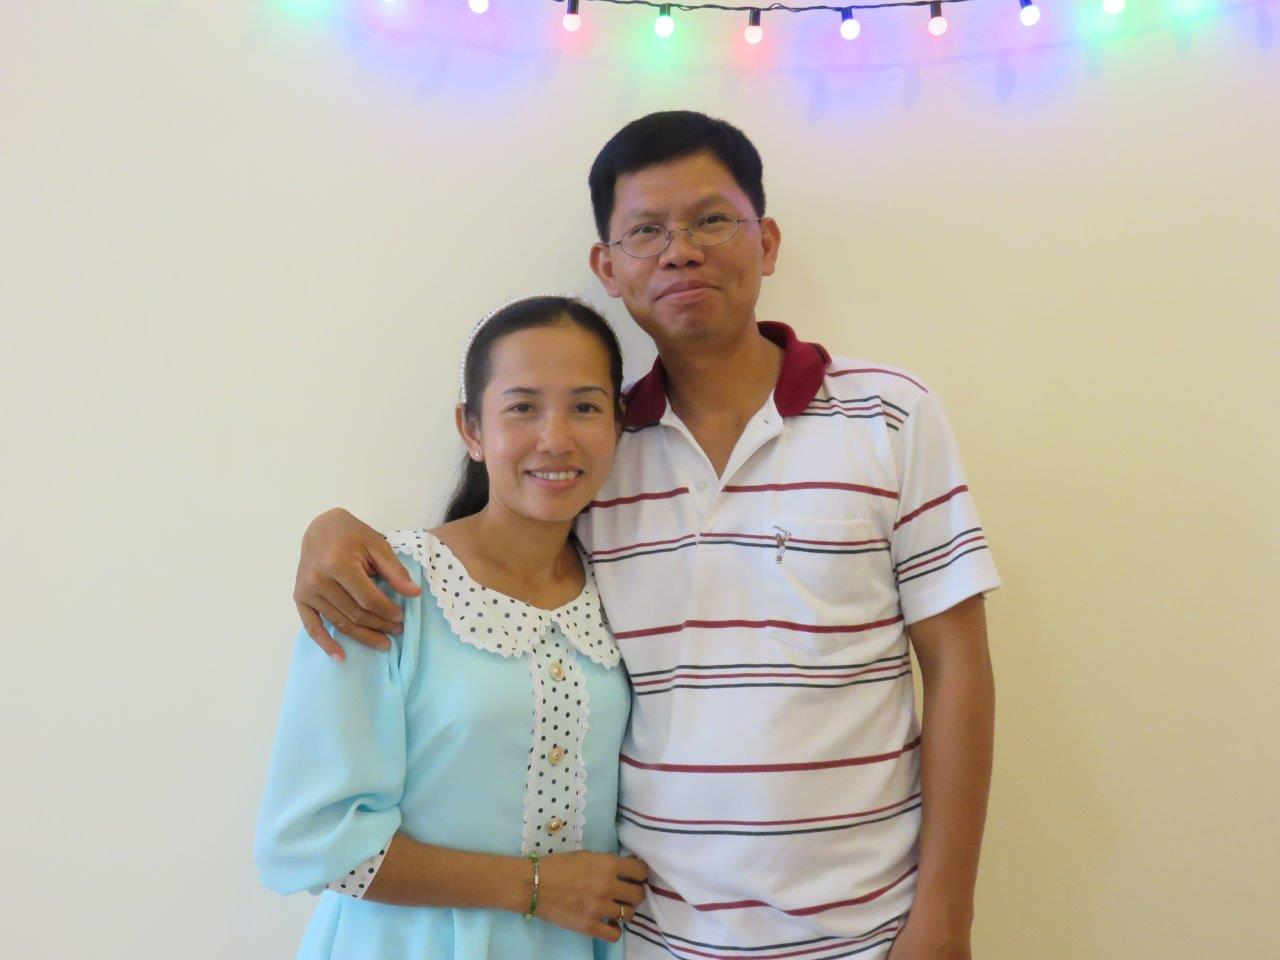 Pastor Thong Leang and his wife, Sophy